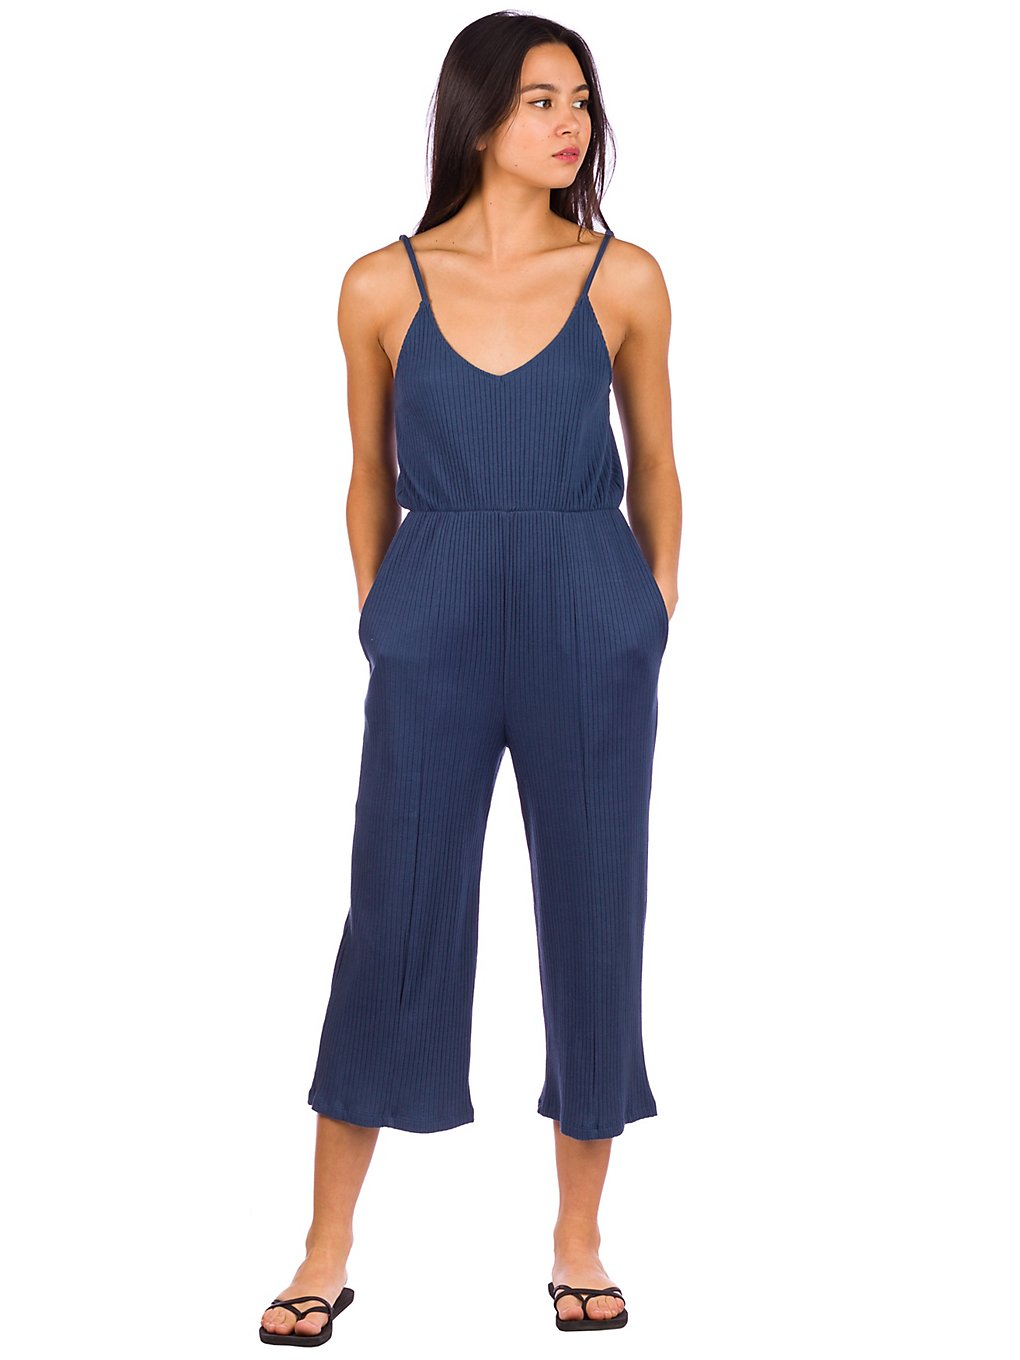 Hosen - RVCA Psychic Overall ink  - Onlineshop Blue Tomato